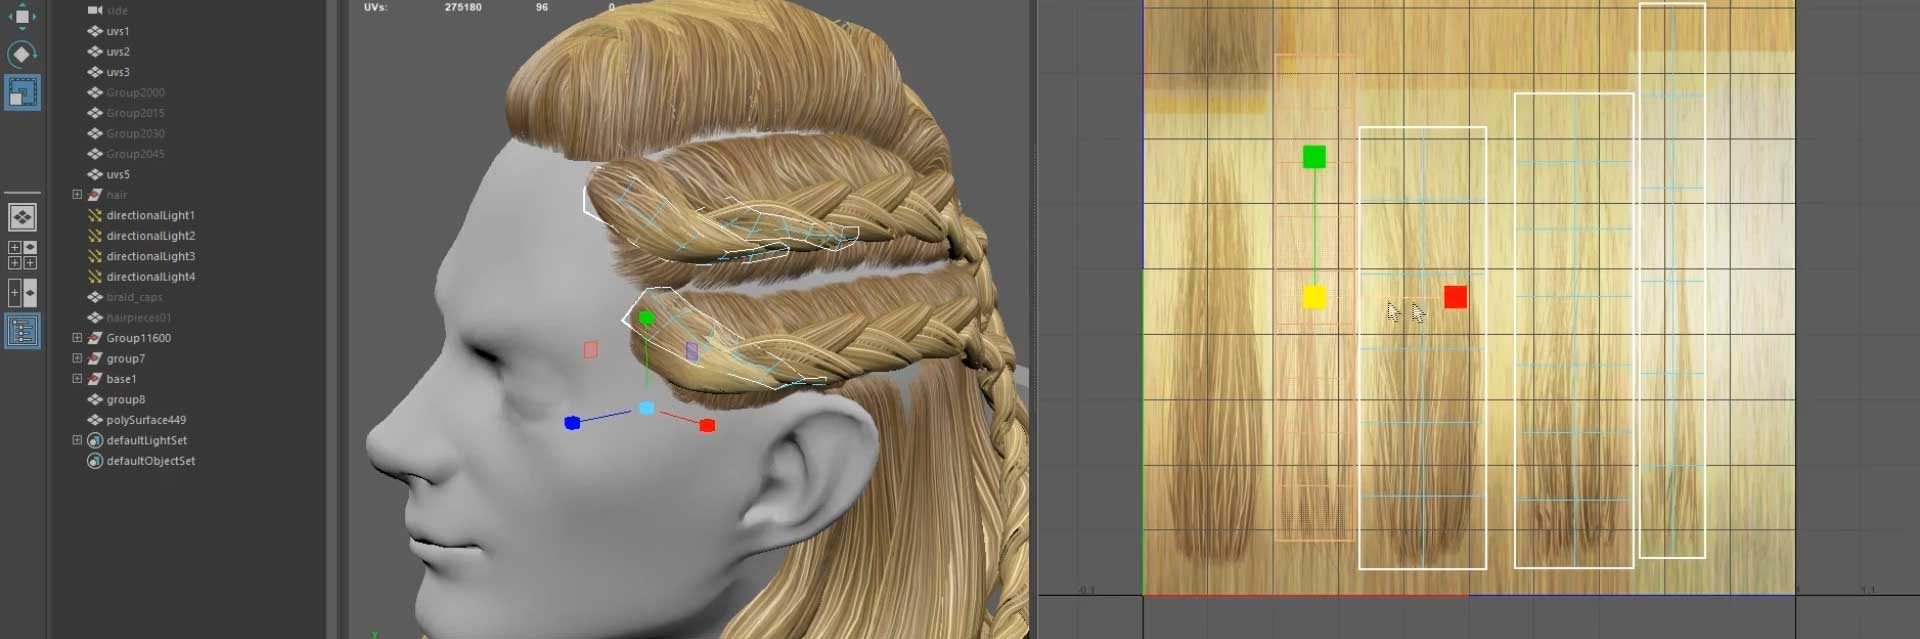 Realistic Real-Time Hair Braids